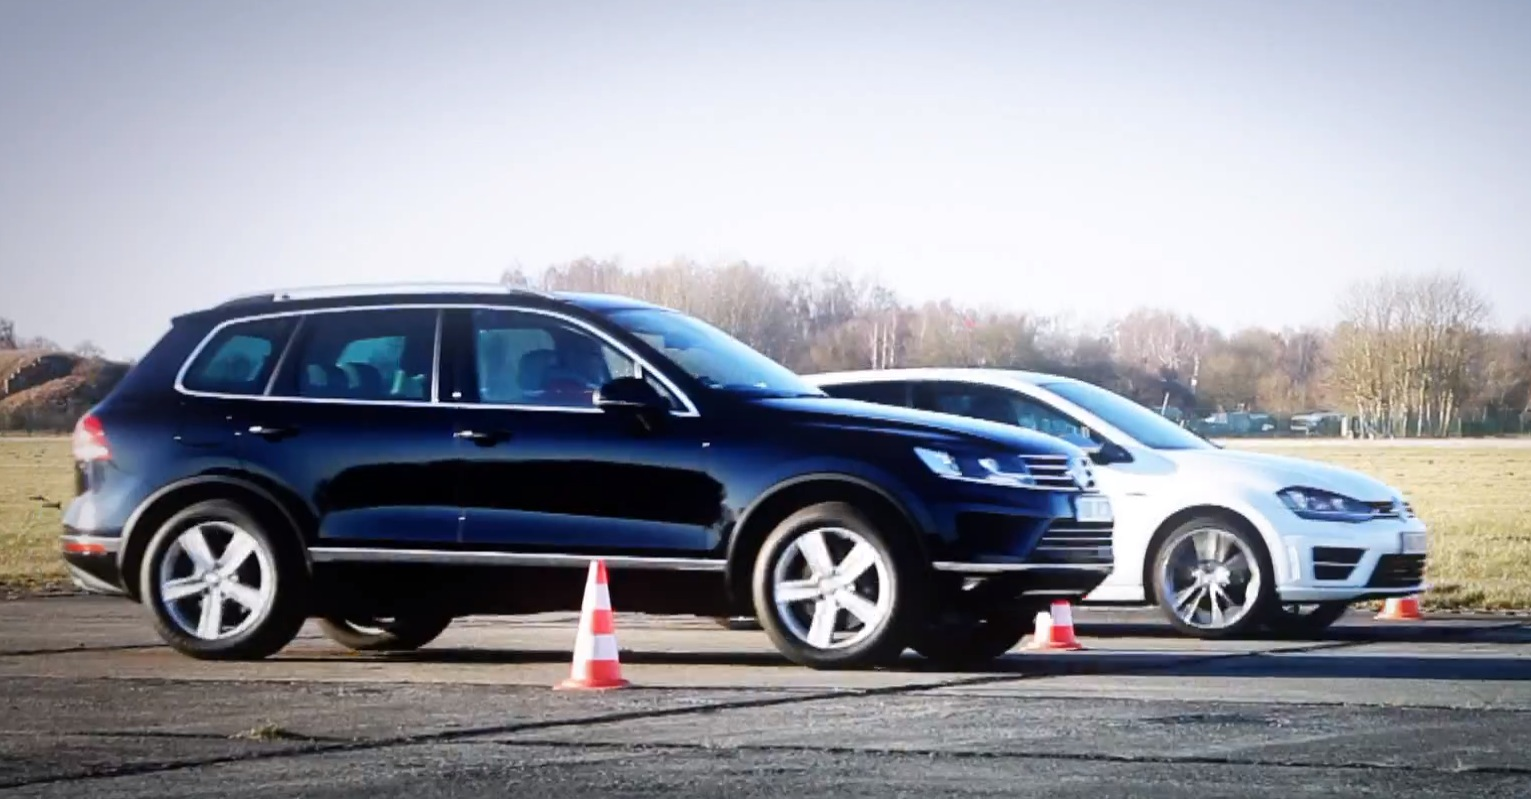 Golf R vs Touareg V8 TDI Drag Race Is Closer Than You Think - autoevolution